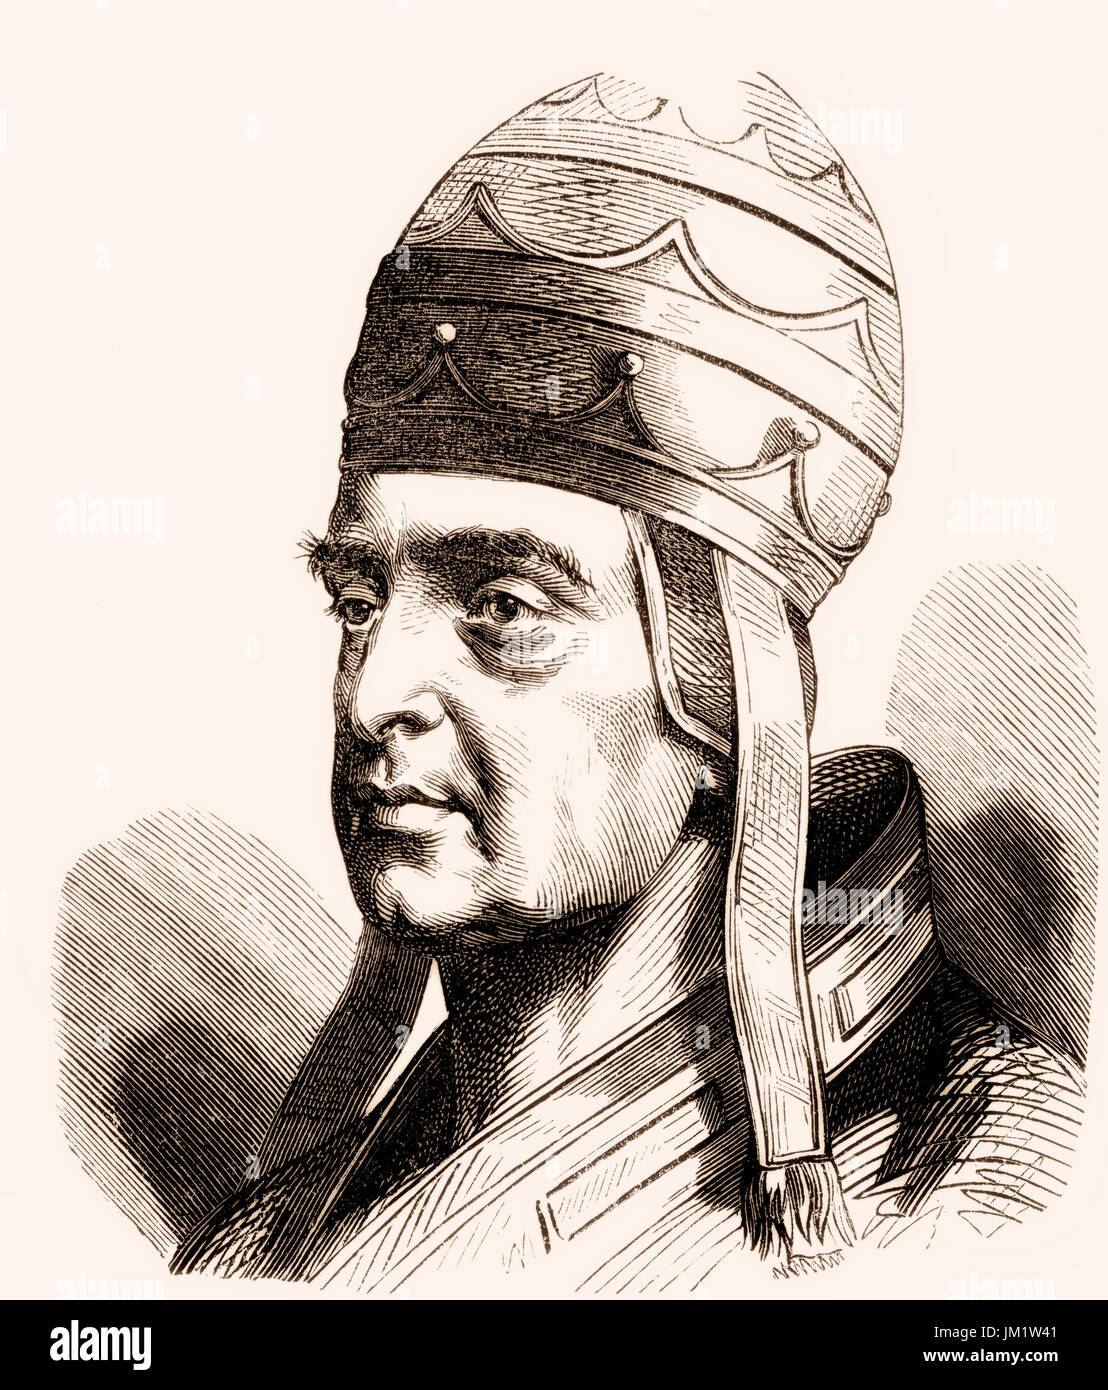 Boniface VIII, c. 1230 – 11 October 1303, born Benedetto Caetani, was Pope from 24 December 1294 to his death - Stock Image